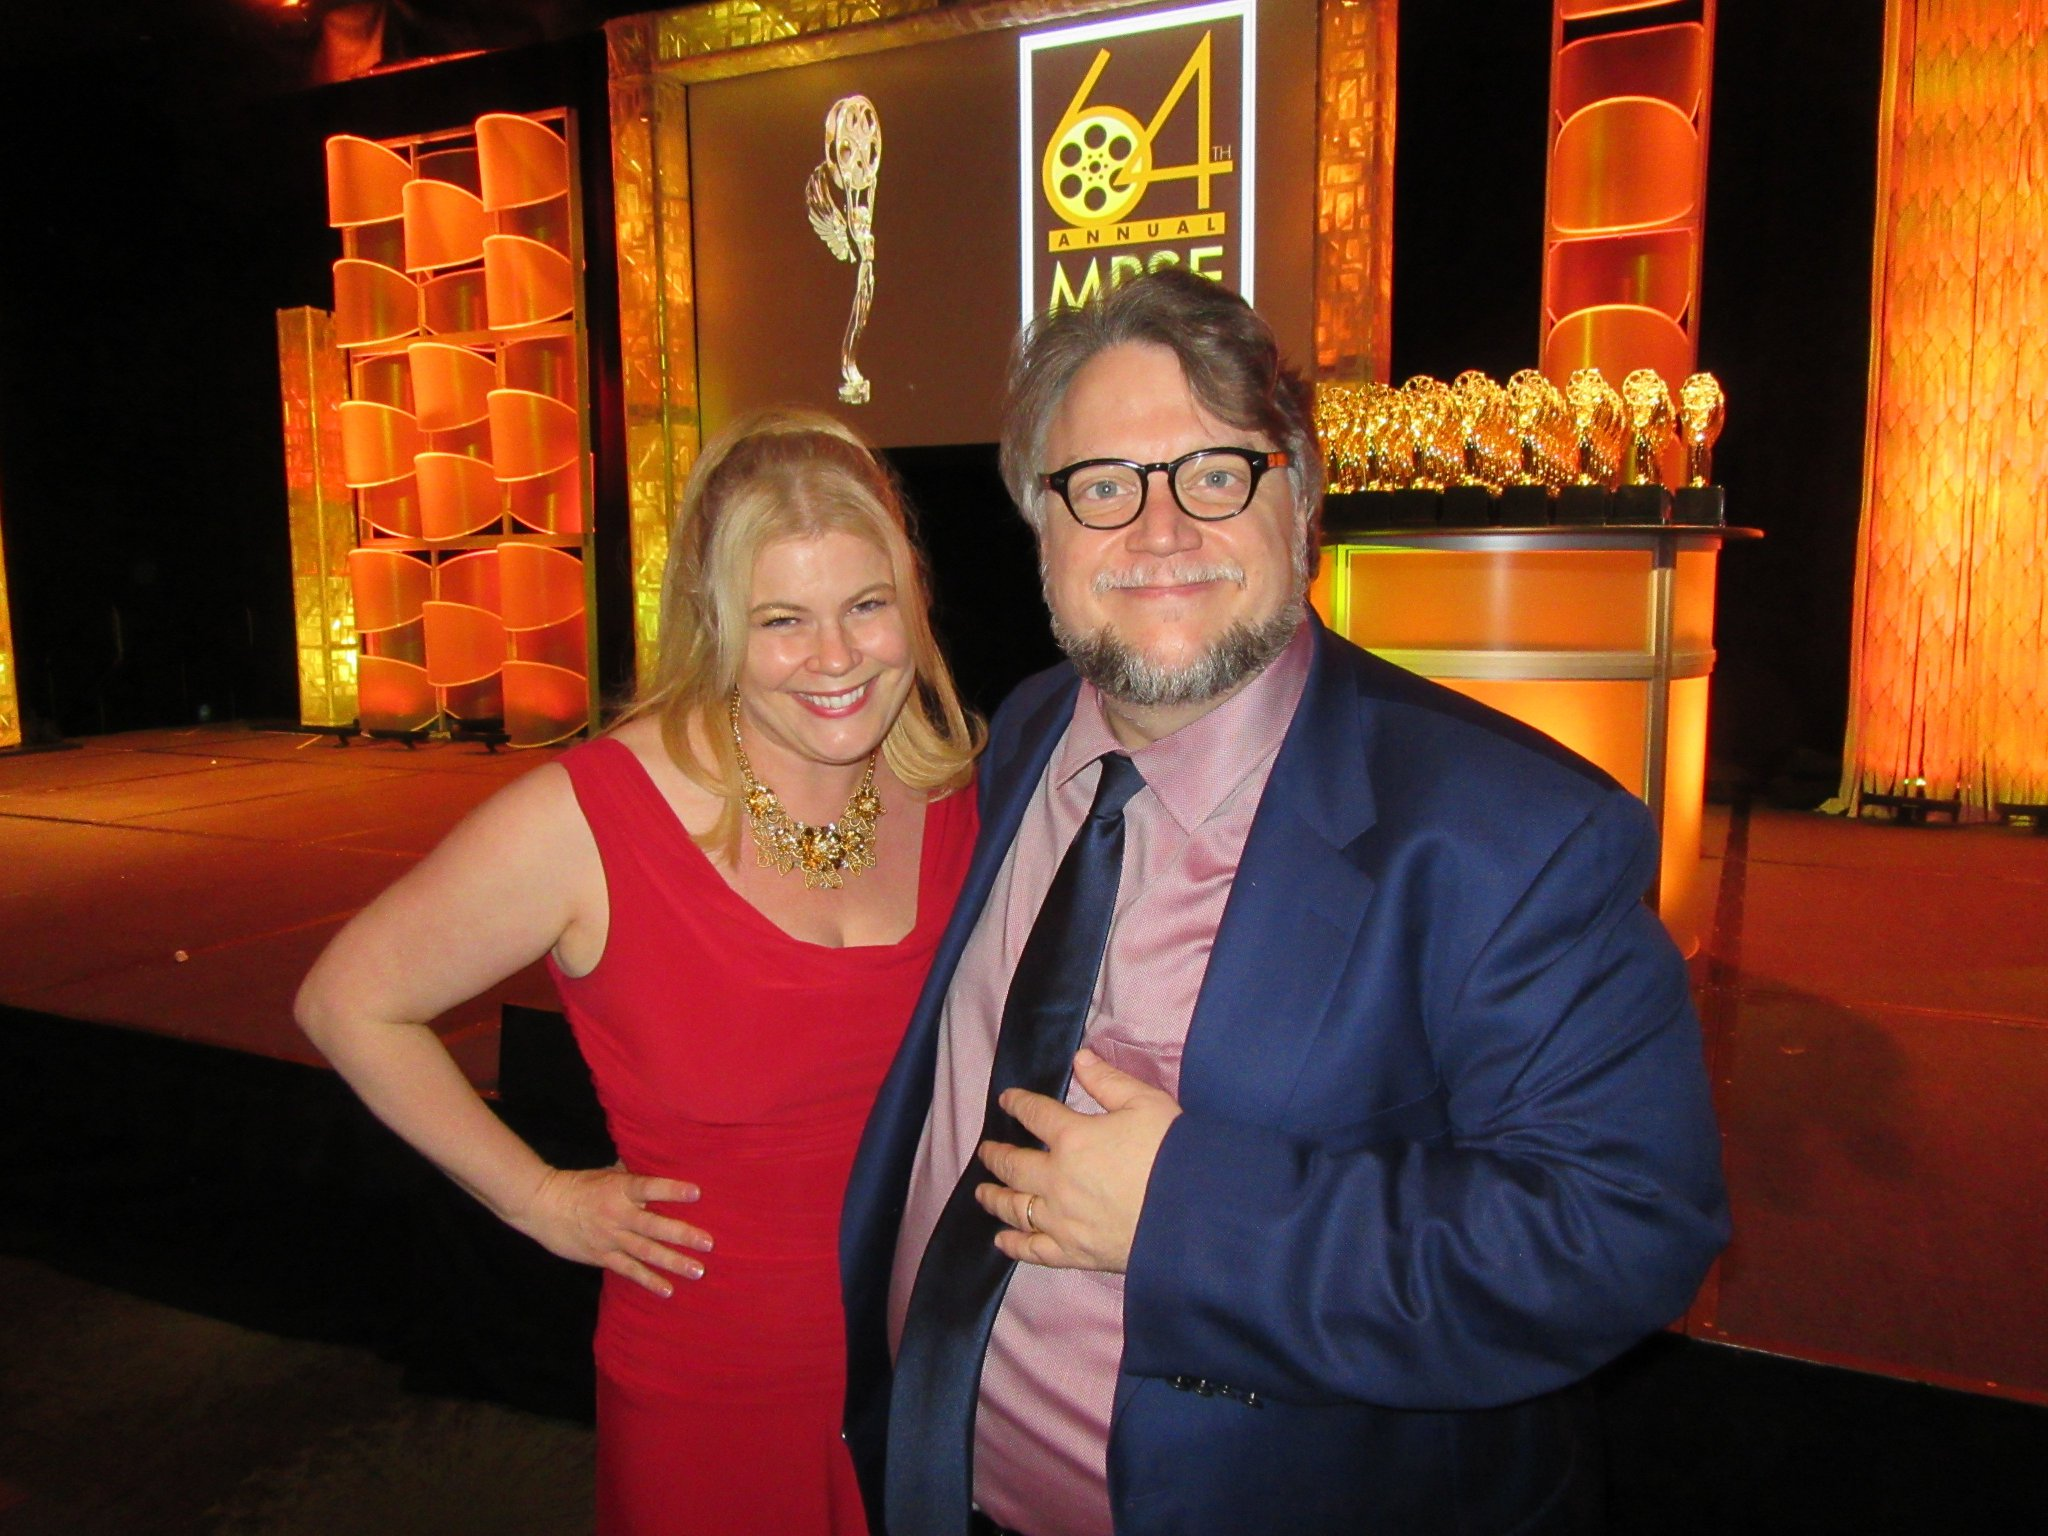 Happy Birthday to true entertainment creator and imaginative mastermind Guillermo del Toro!!